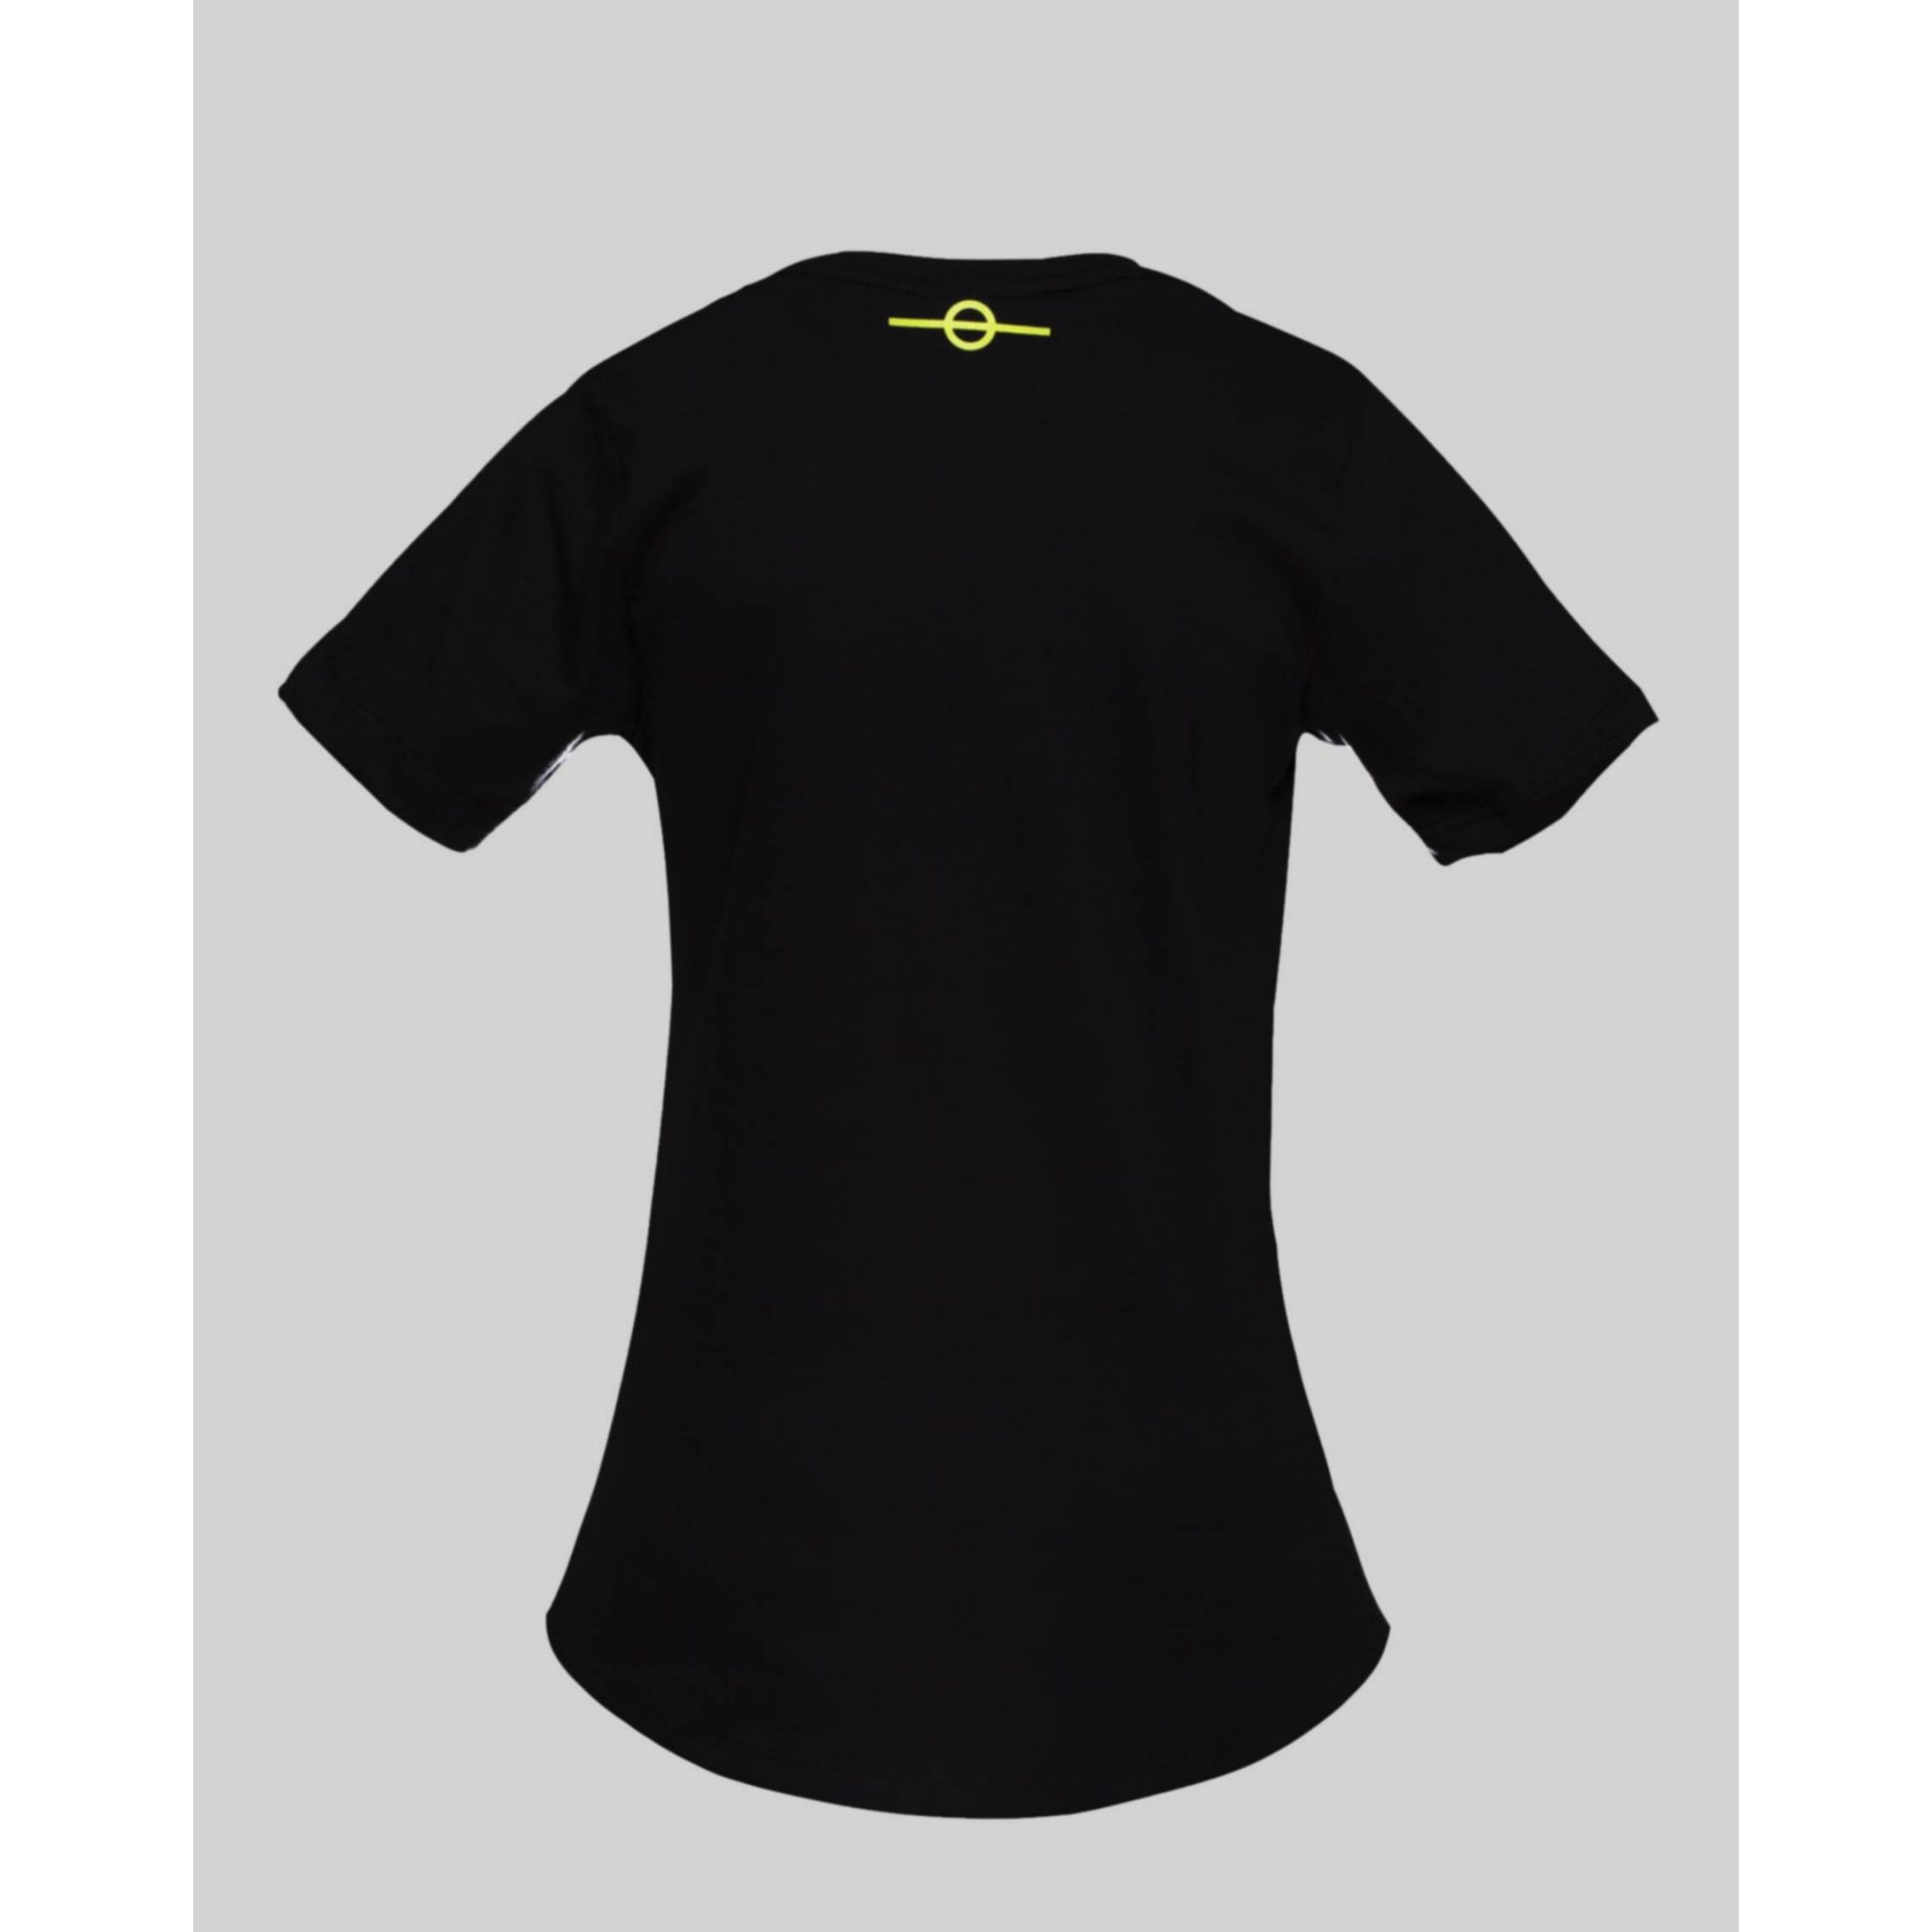 Camiseta Buh Kids Fluor Square Black